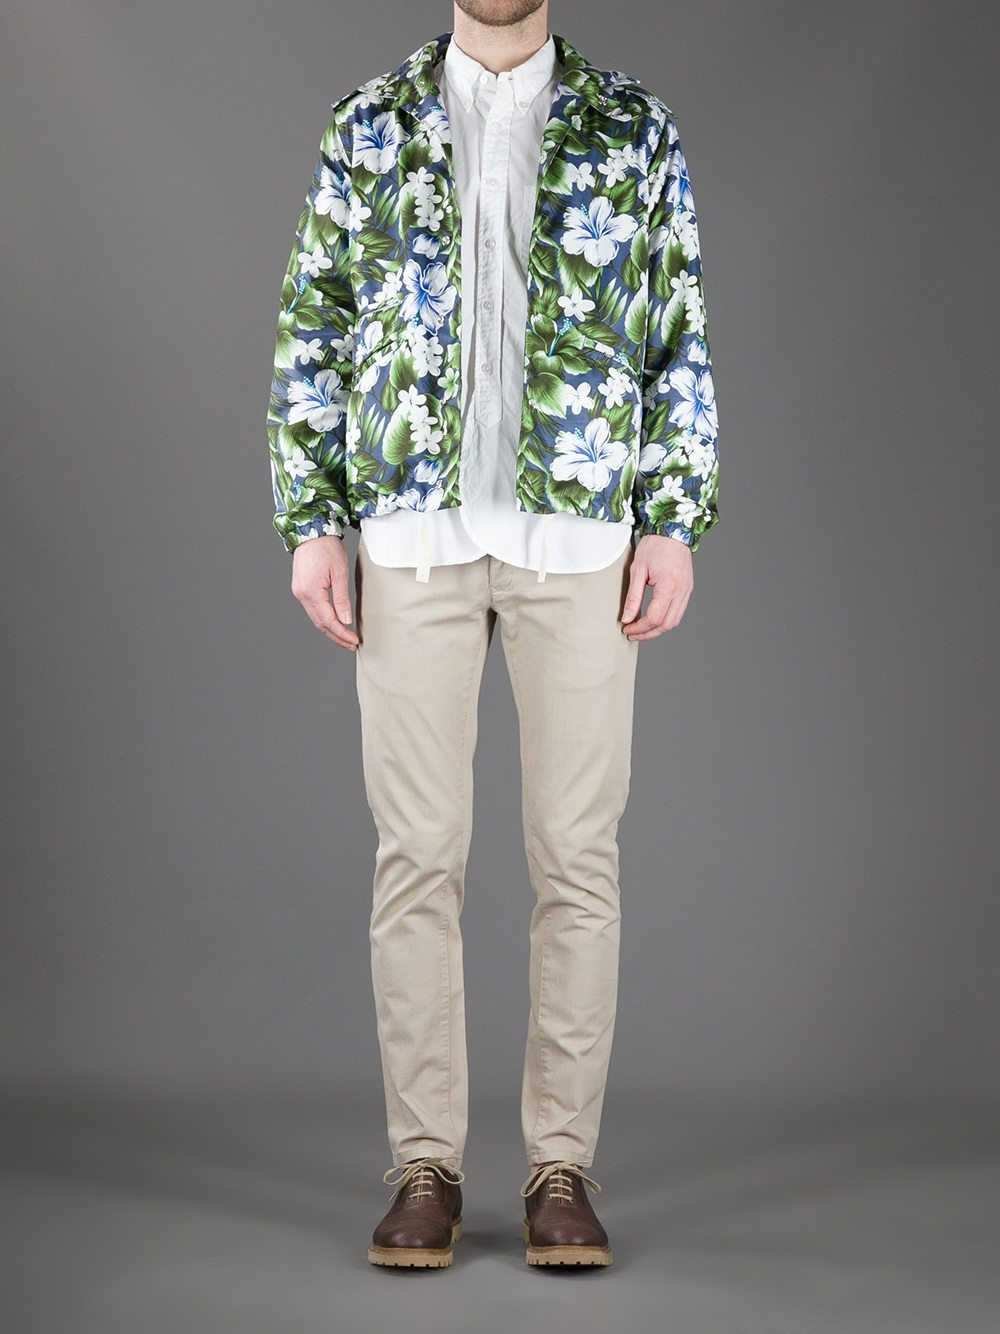 Hawaiian-Print-Hooded-Jacket-Engineered-Floral-Print-FarFetch-Model